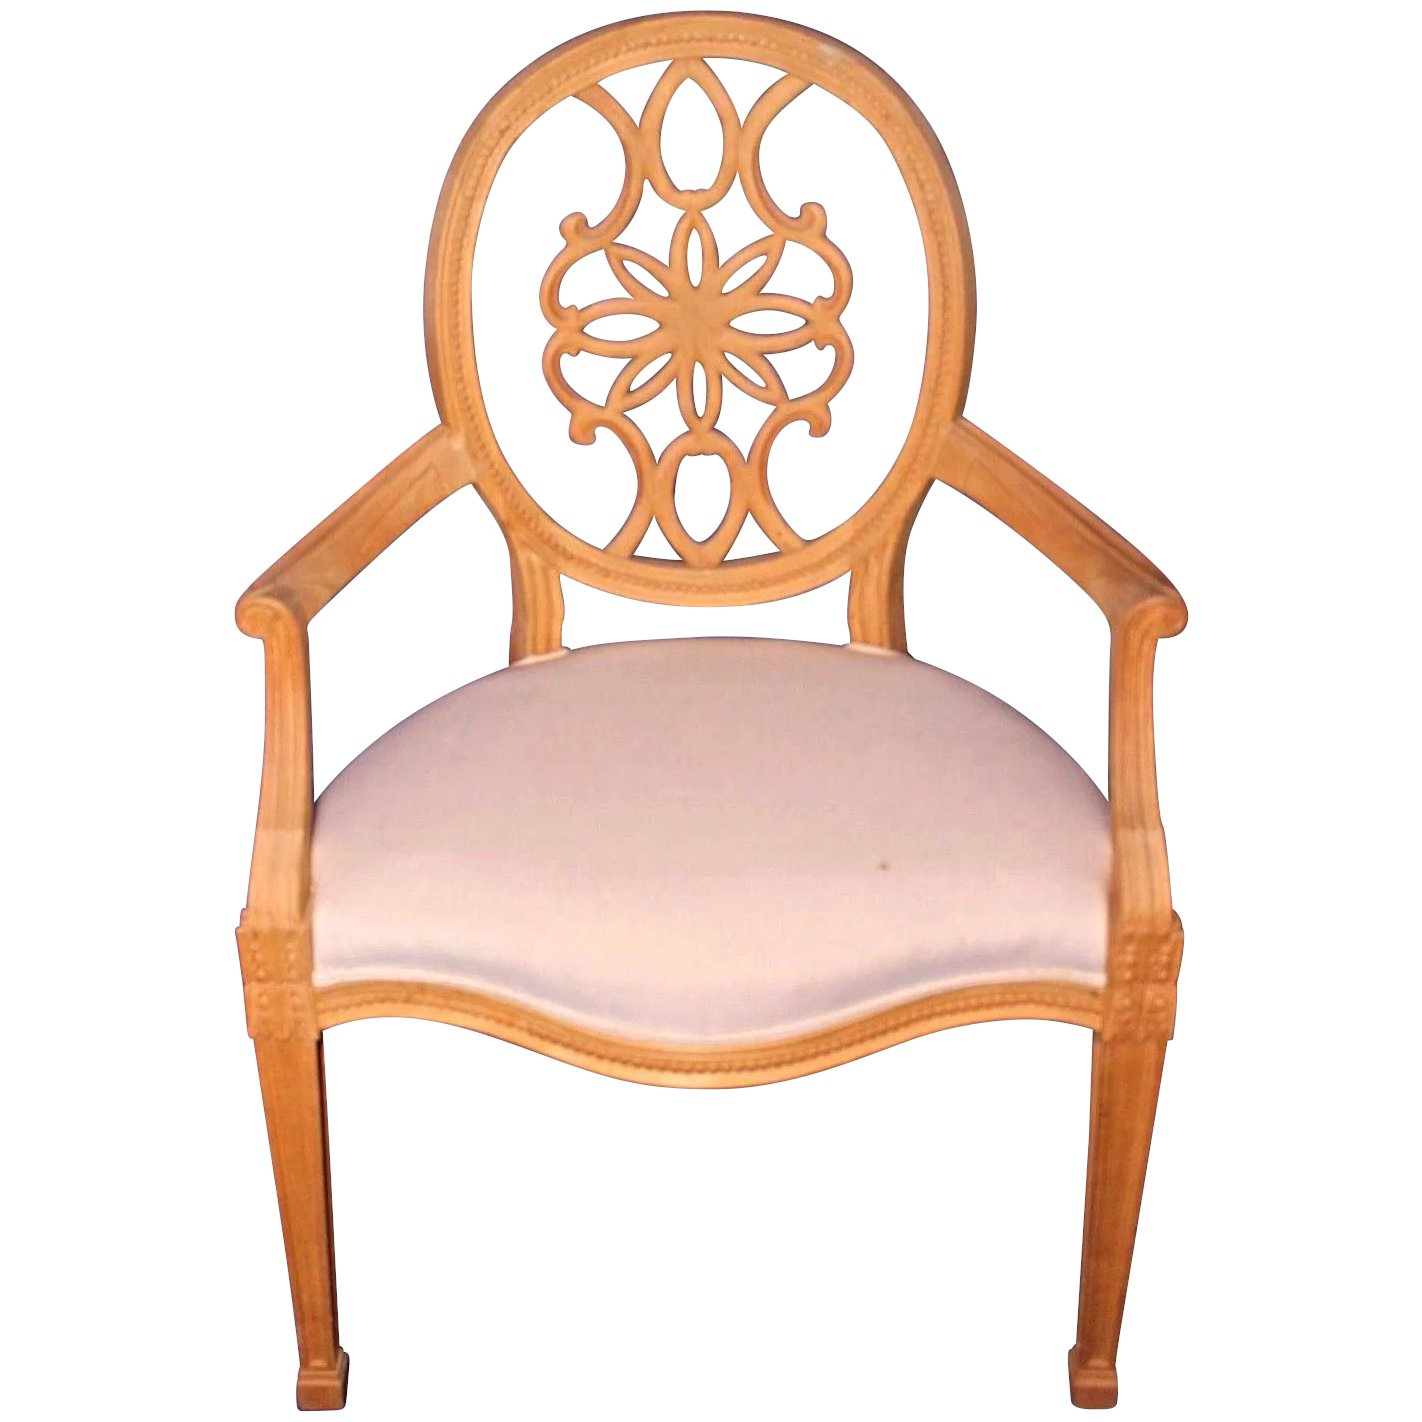 Groovy George Iii Style Carved Wood Armchair Chair Accent Dining Side Antique Vintage Ncnpc Chair Design For Home Ncnpcorg